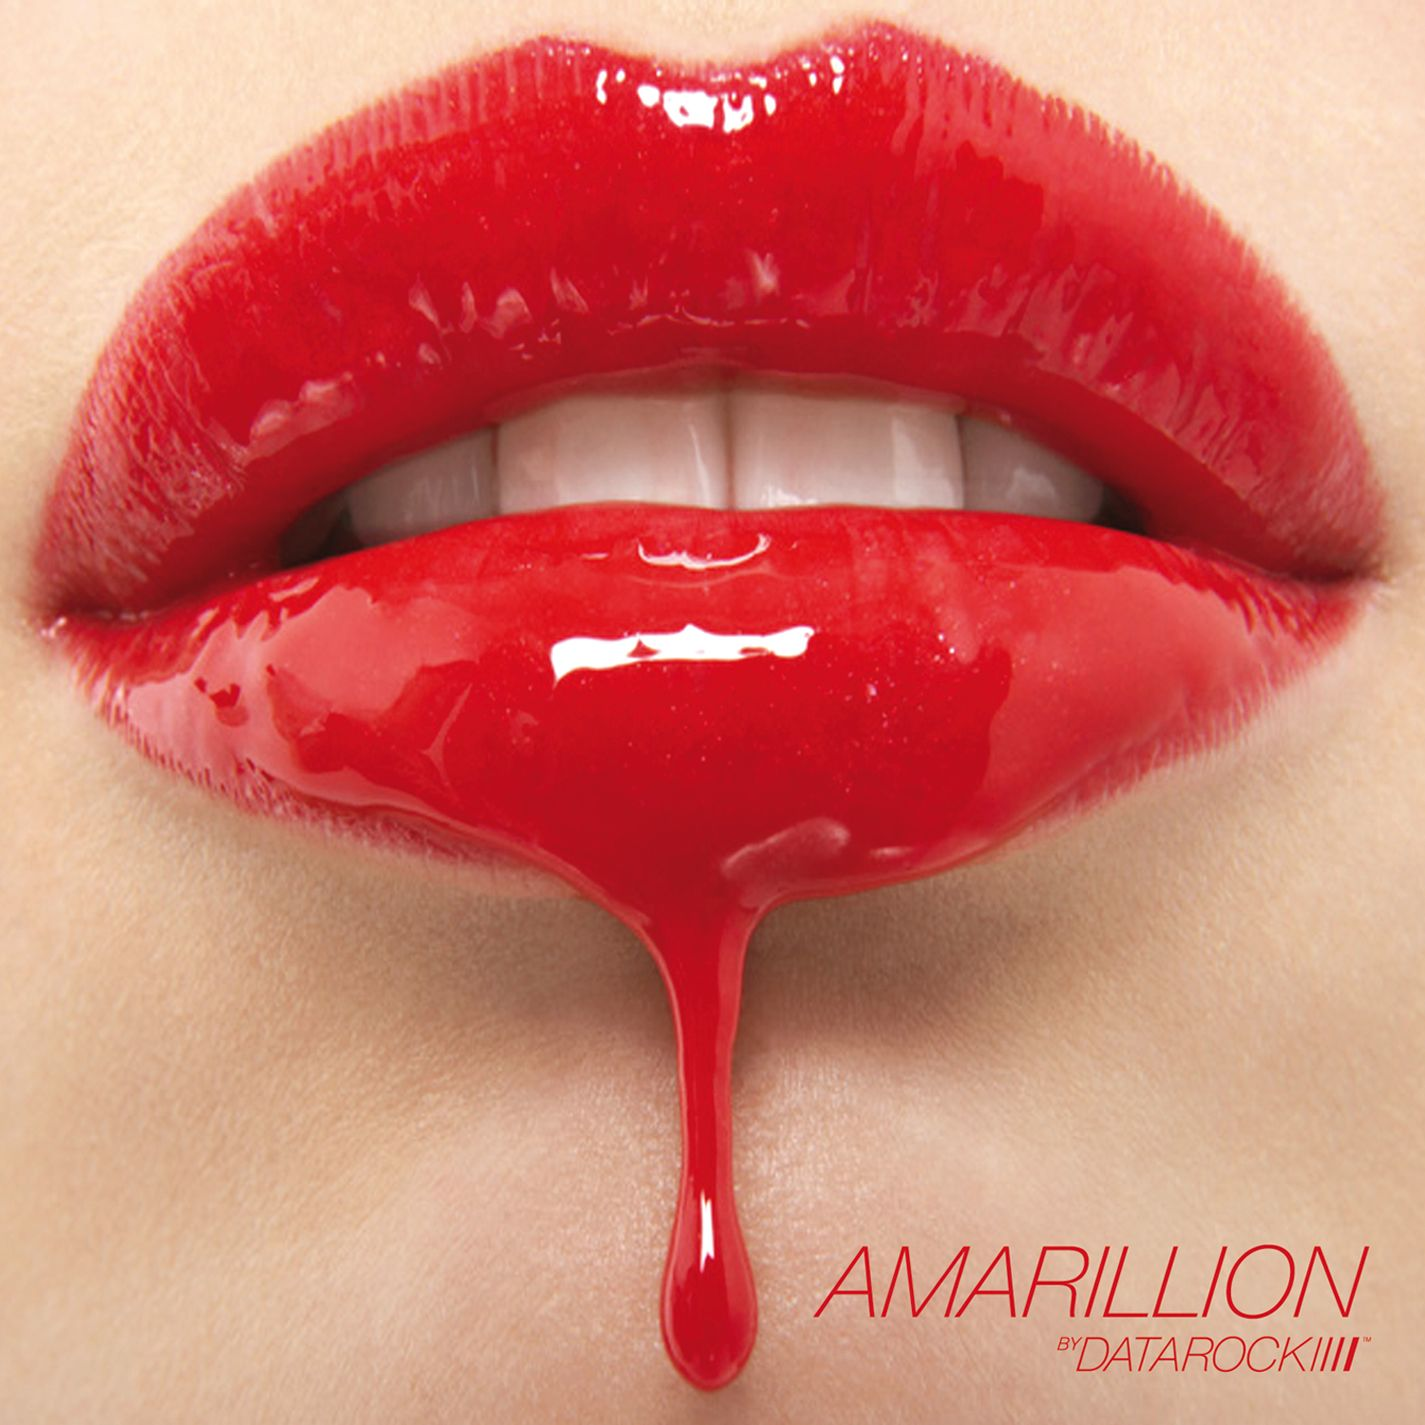 Amarillion (Eberhart's For The Love Mix)